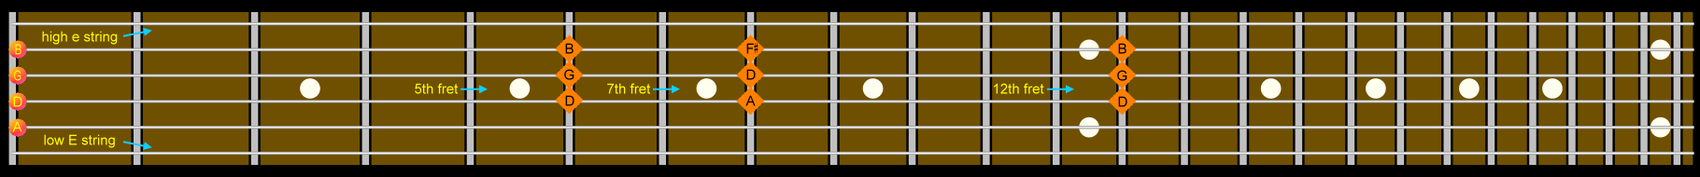 Guitar Fretboard Harmonic Chords G and D.png